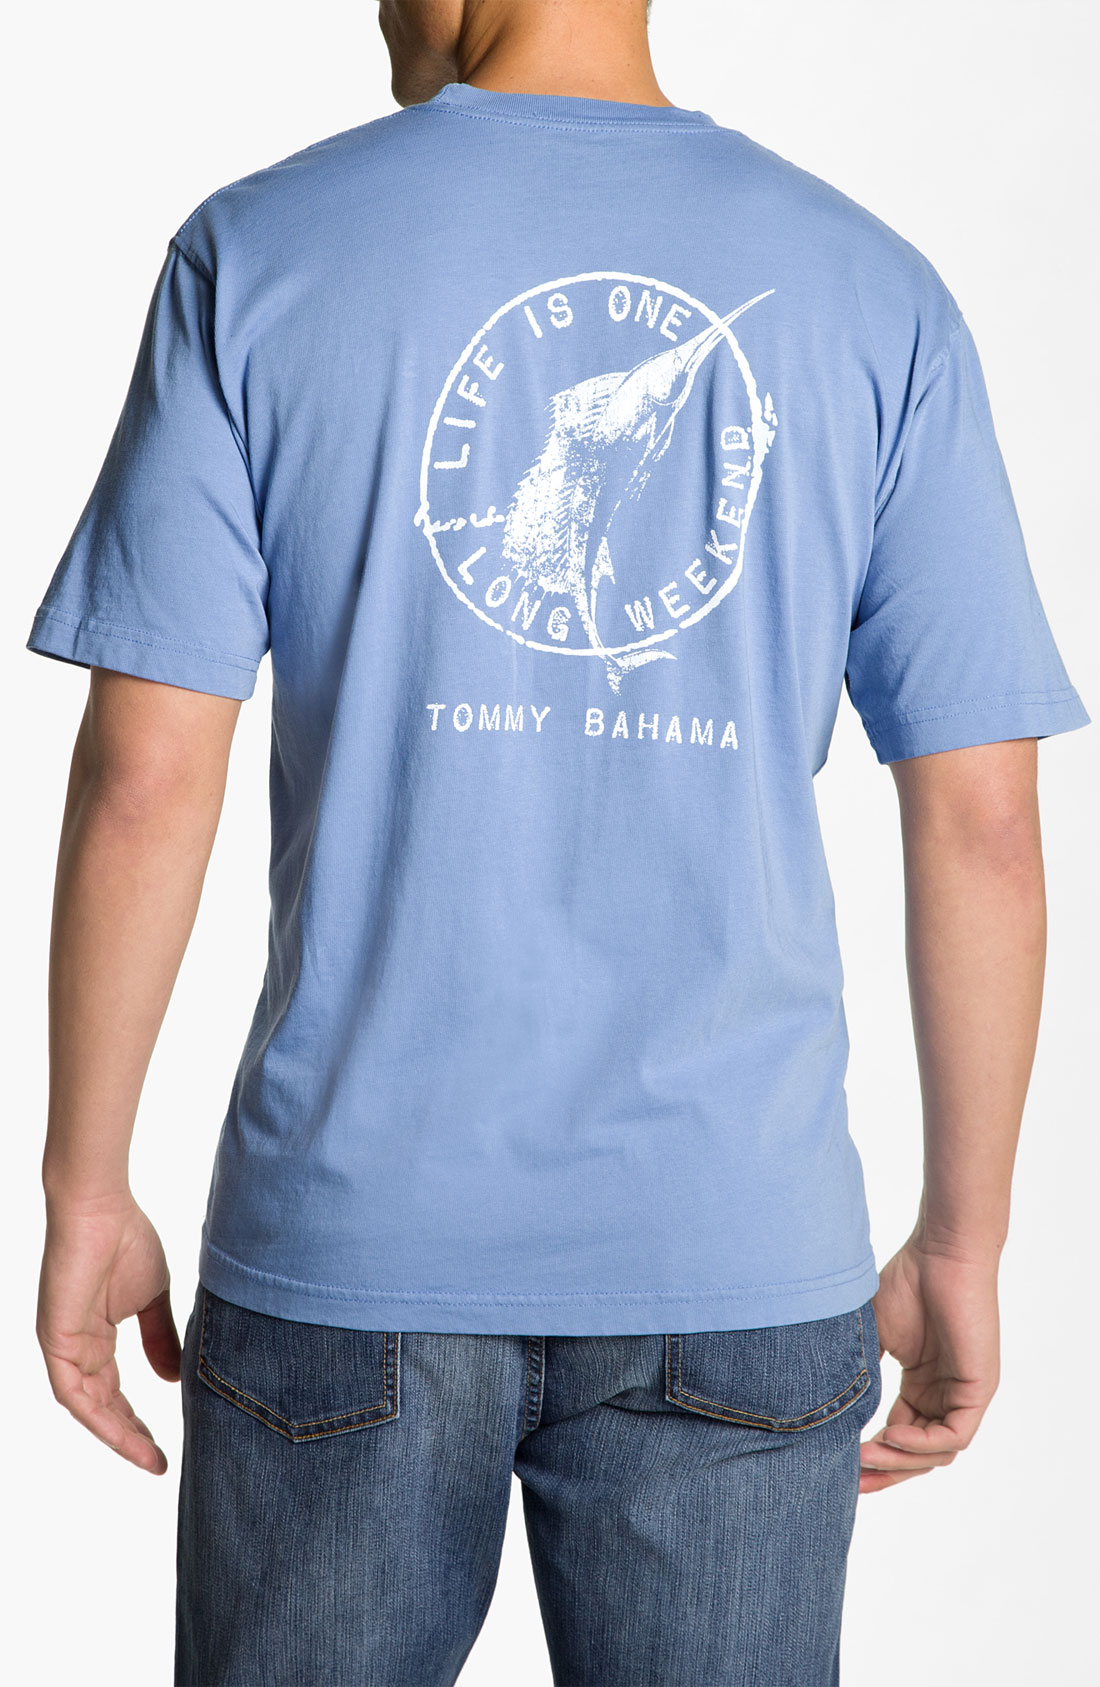 Tommy bahama life is one long weekend tshirt in blue for for Tommy bahama florida shirt